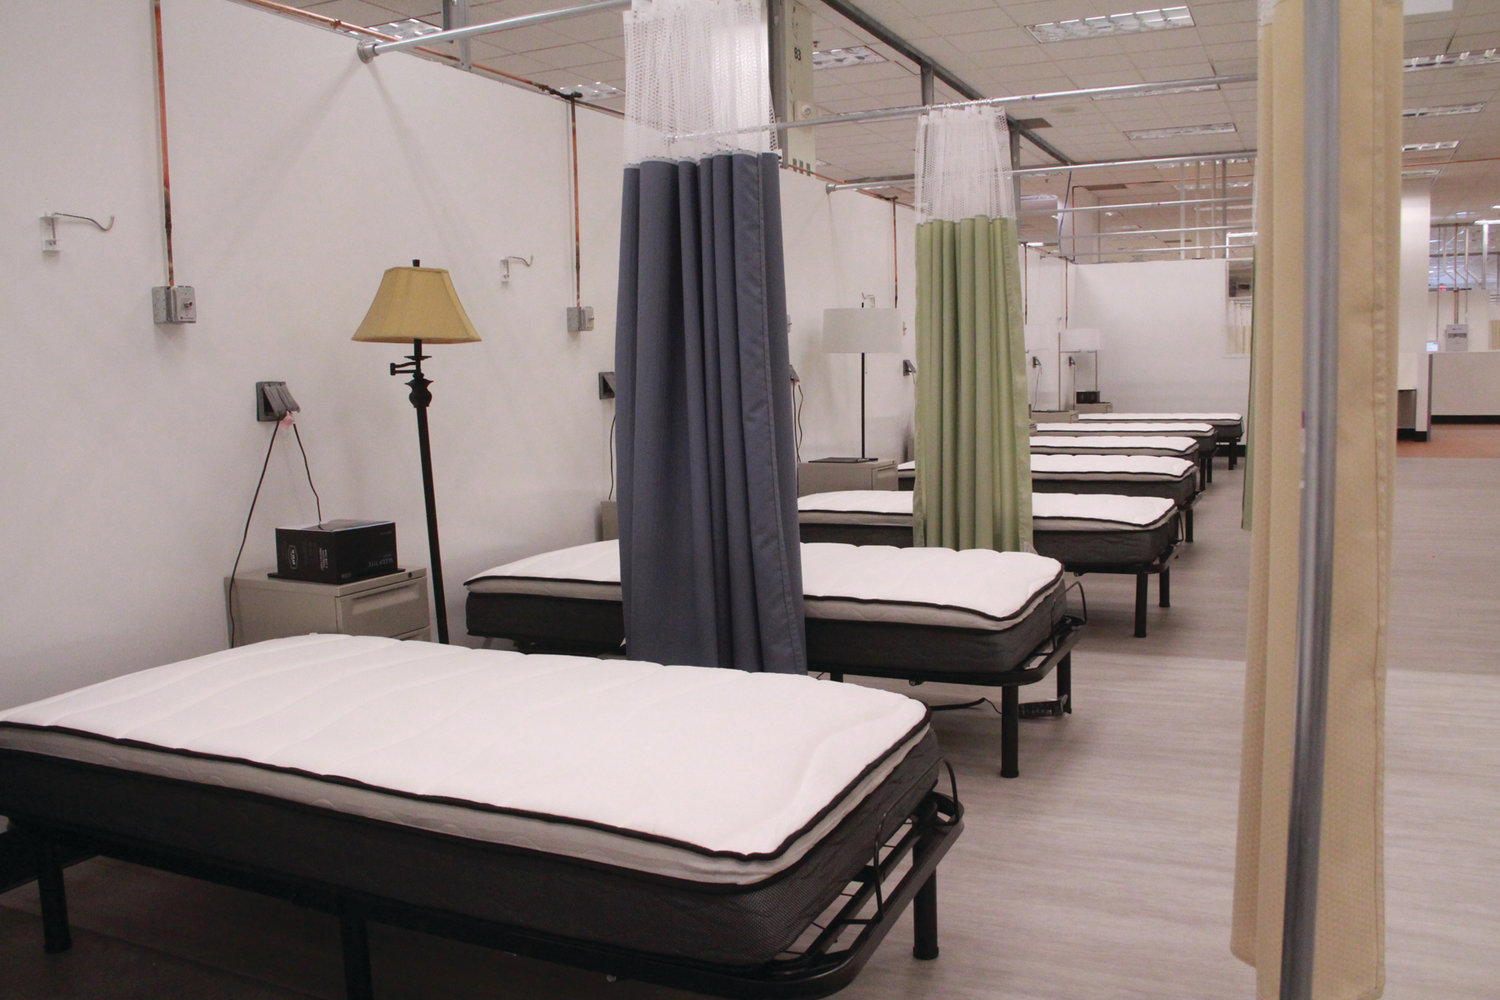 READY FOR PATIENTS: The Cranston field hospital has three wards made up of pods like this, with 18 to 24 beds each.